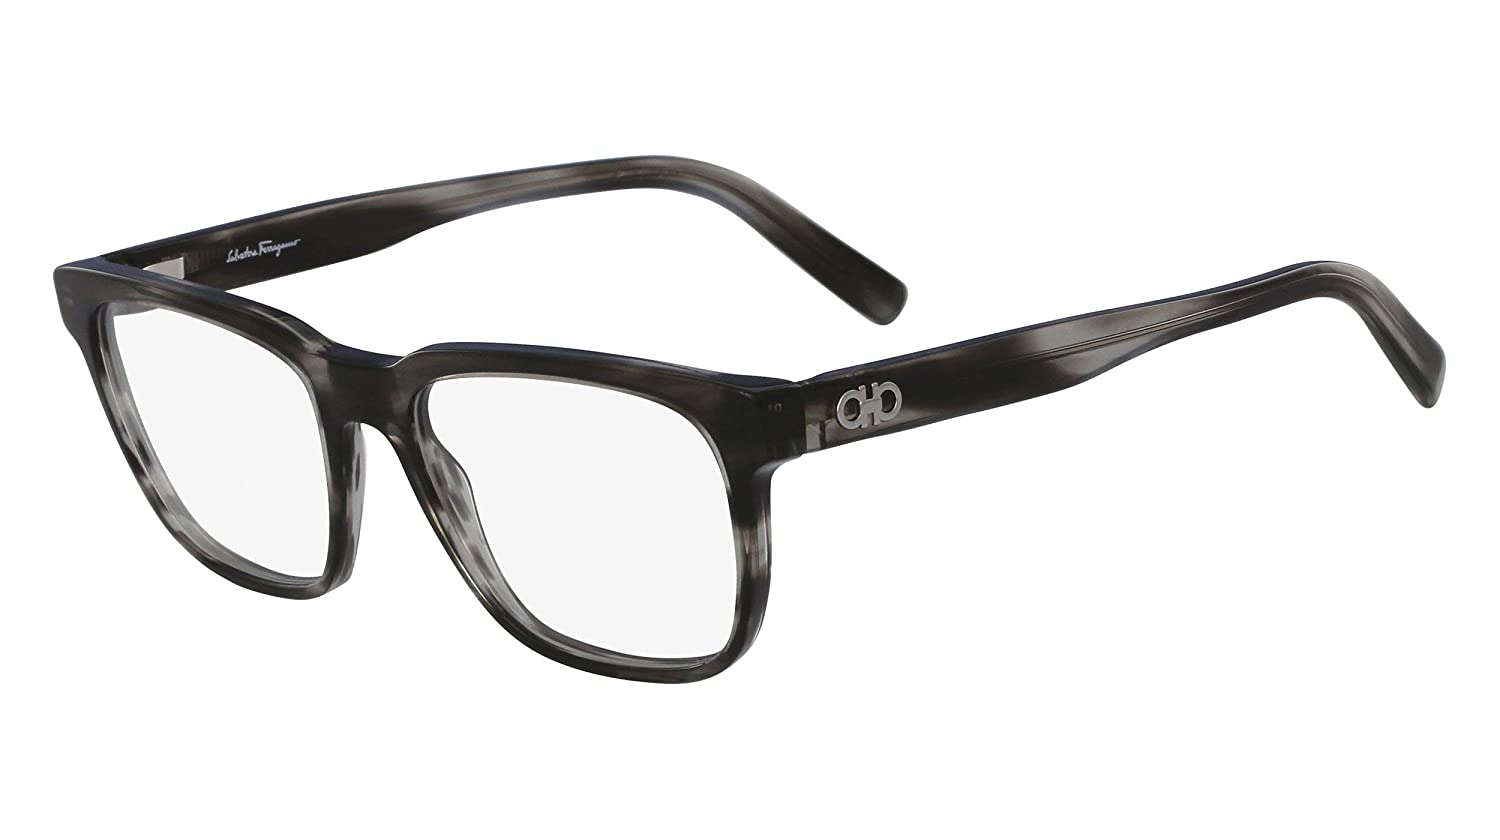 Salvatore Ferragamo Eyeglasses SF2780 003 Rx-Able